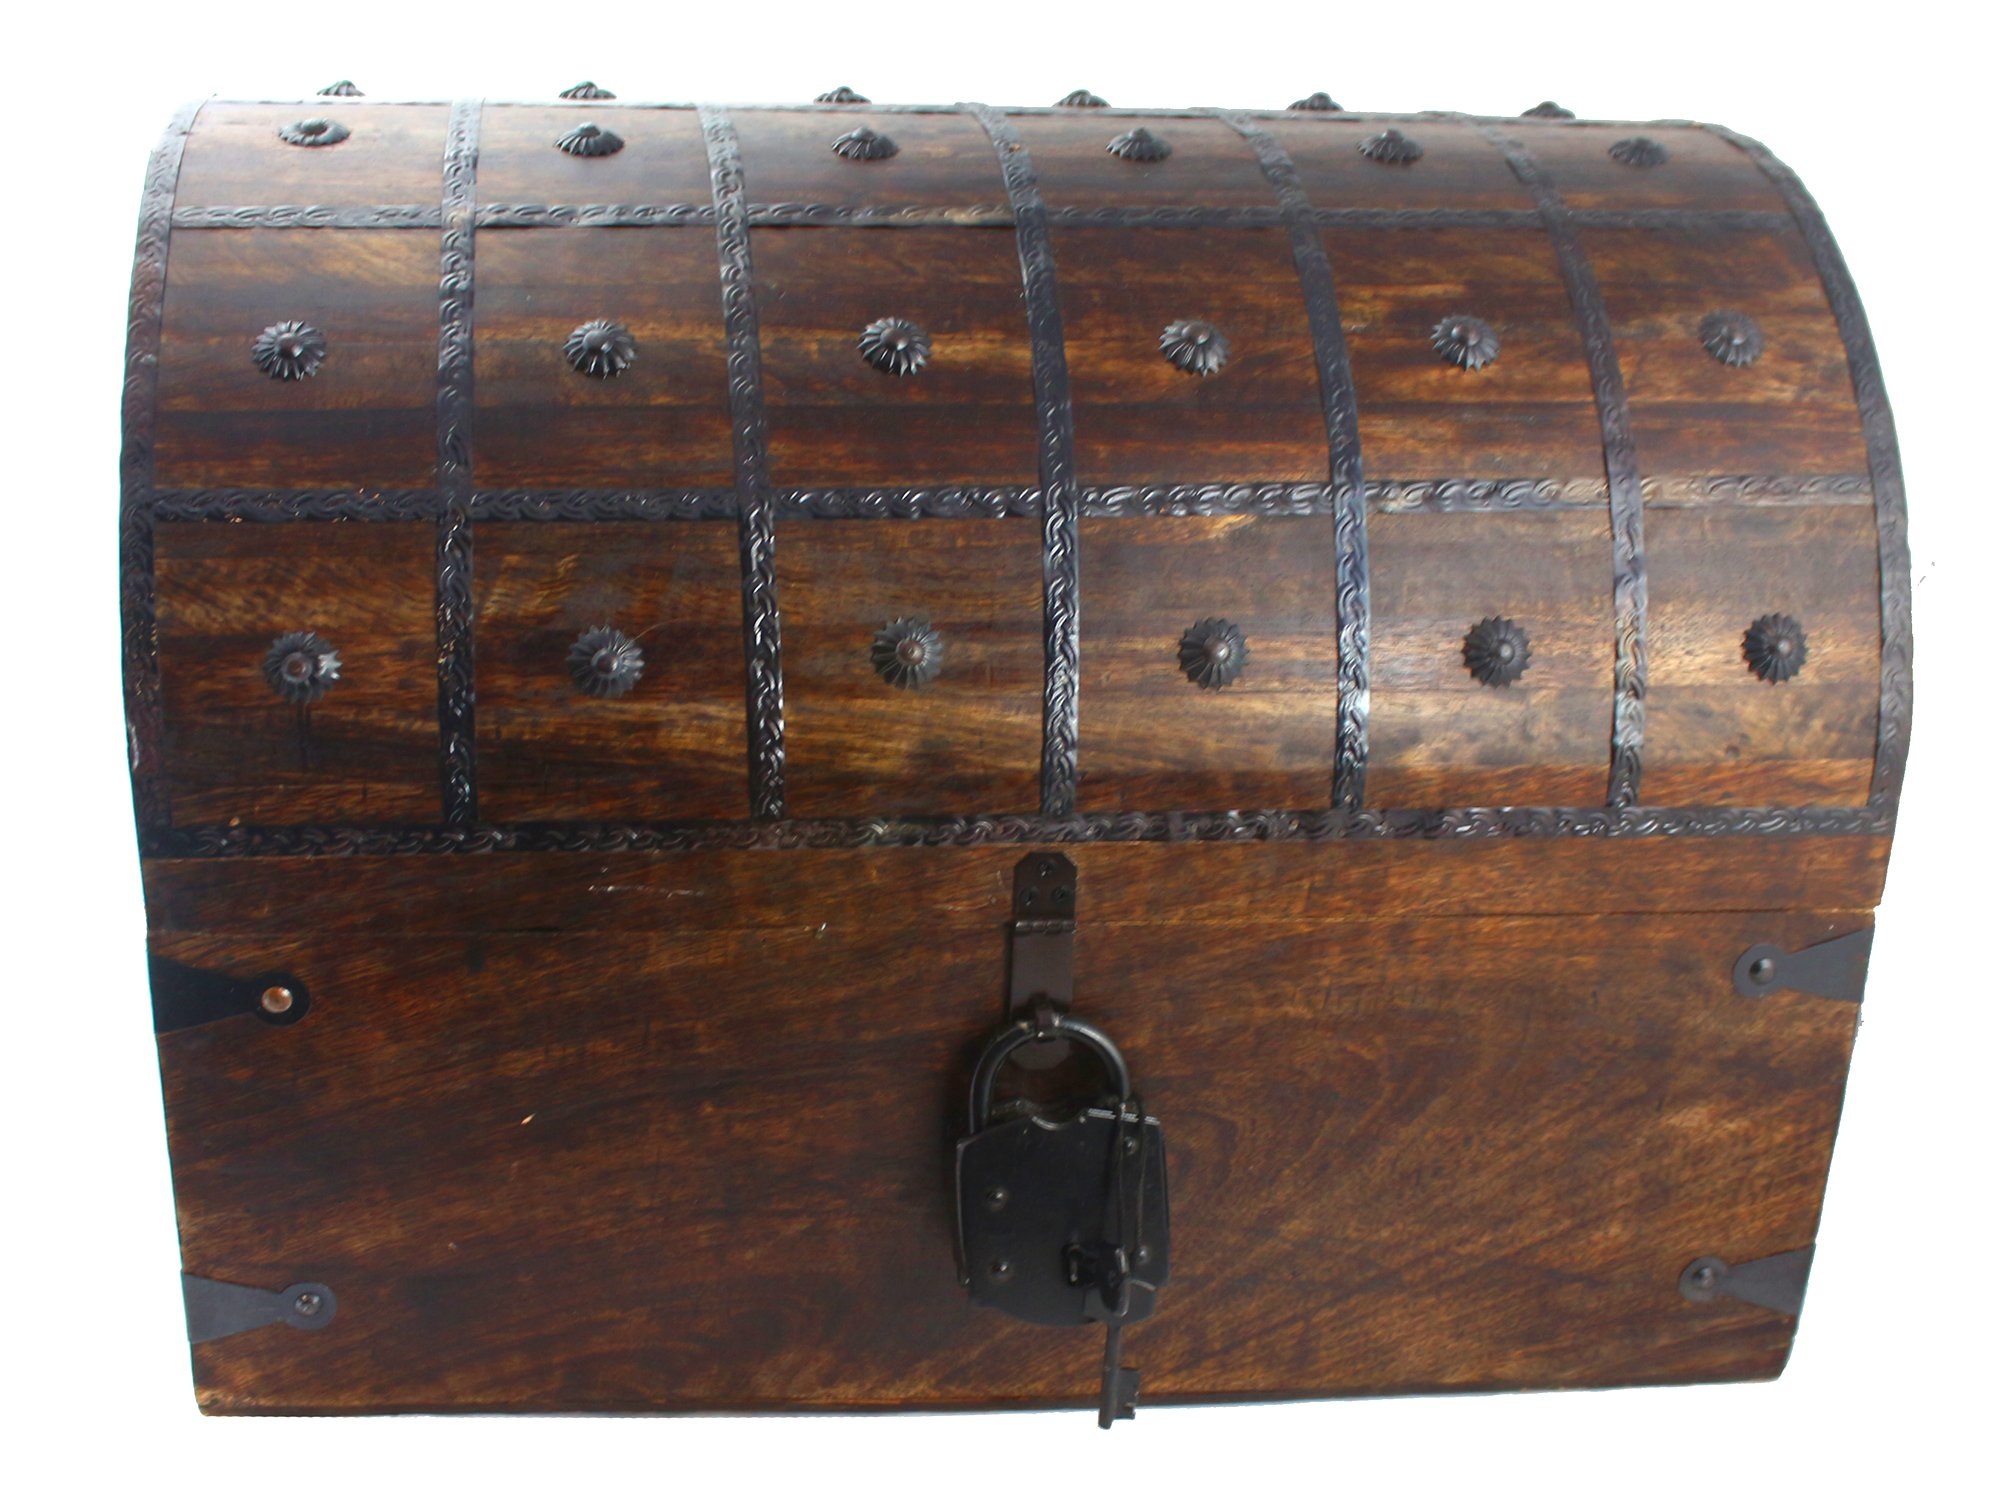 WellPackBox Wooden Pirate Treasure Chest Box With Antique Style Lock And Skeleton Key (Colossus)